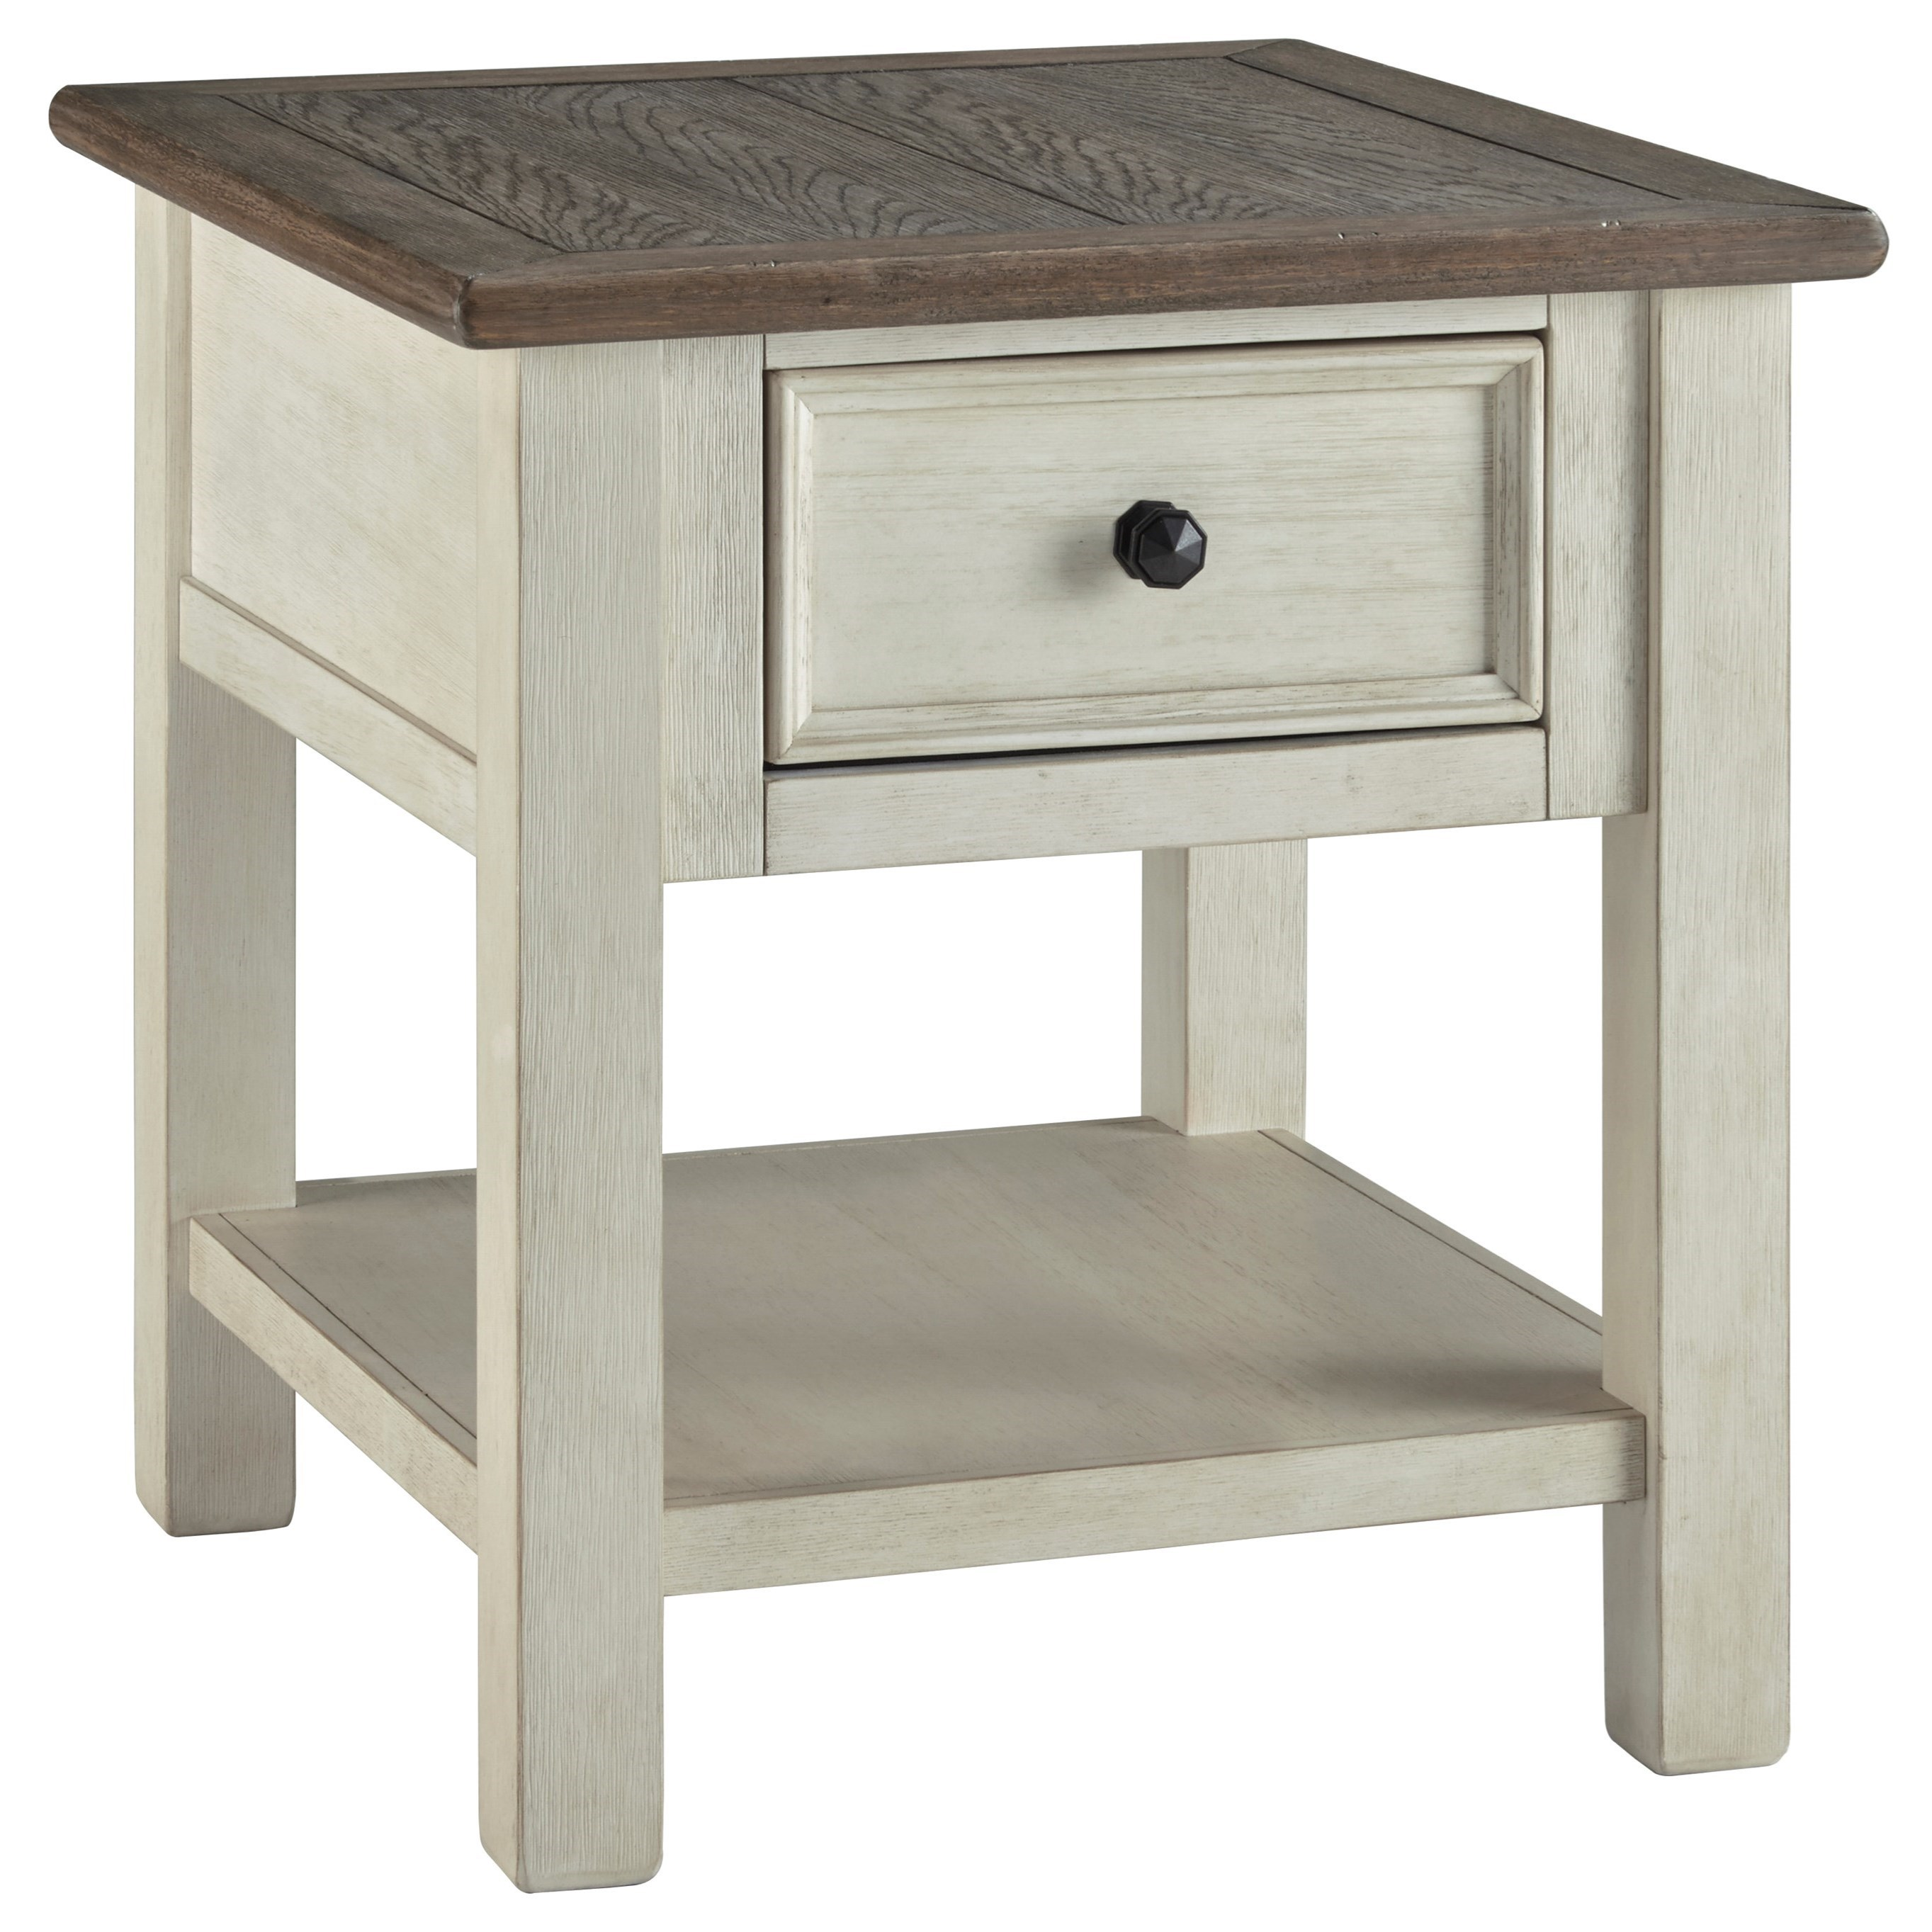 Bolanburg End Table by Signature Design by Ashley at HomeWorld Furniture